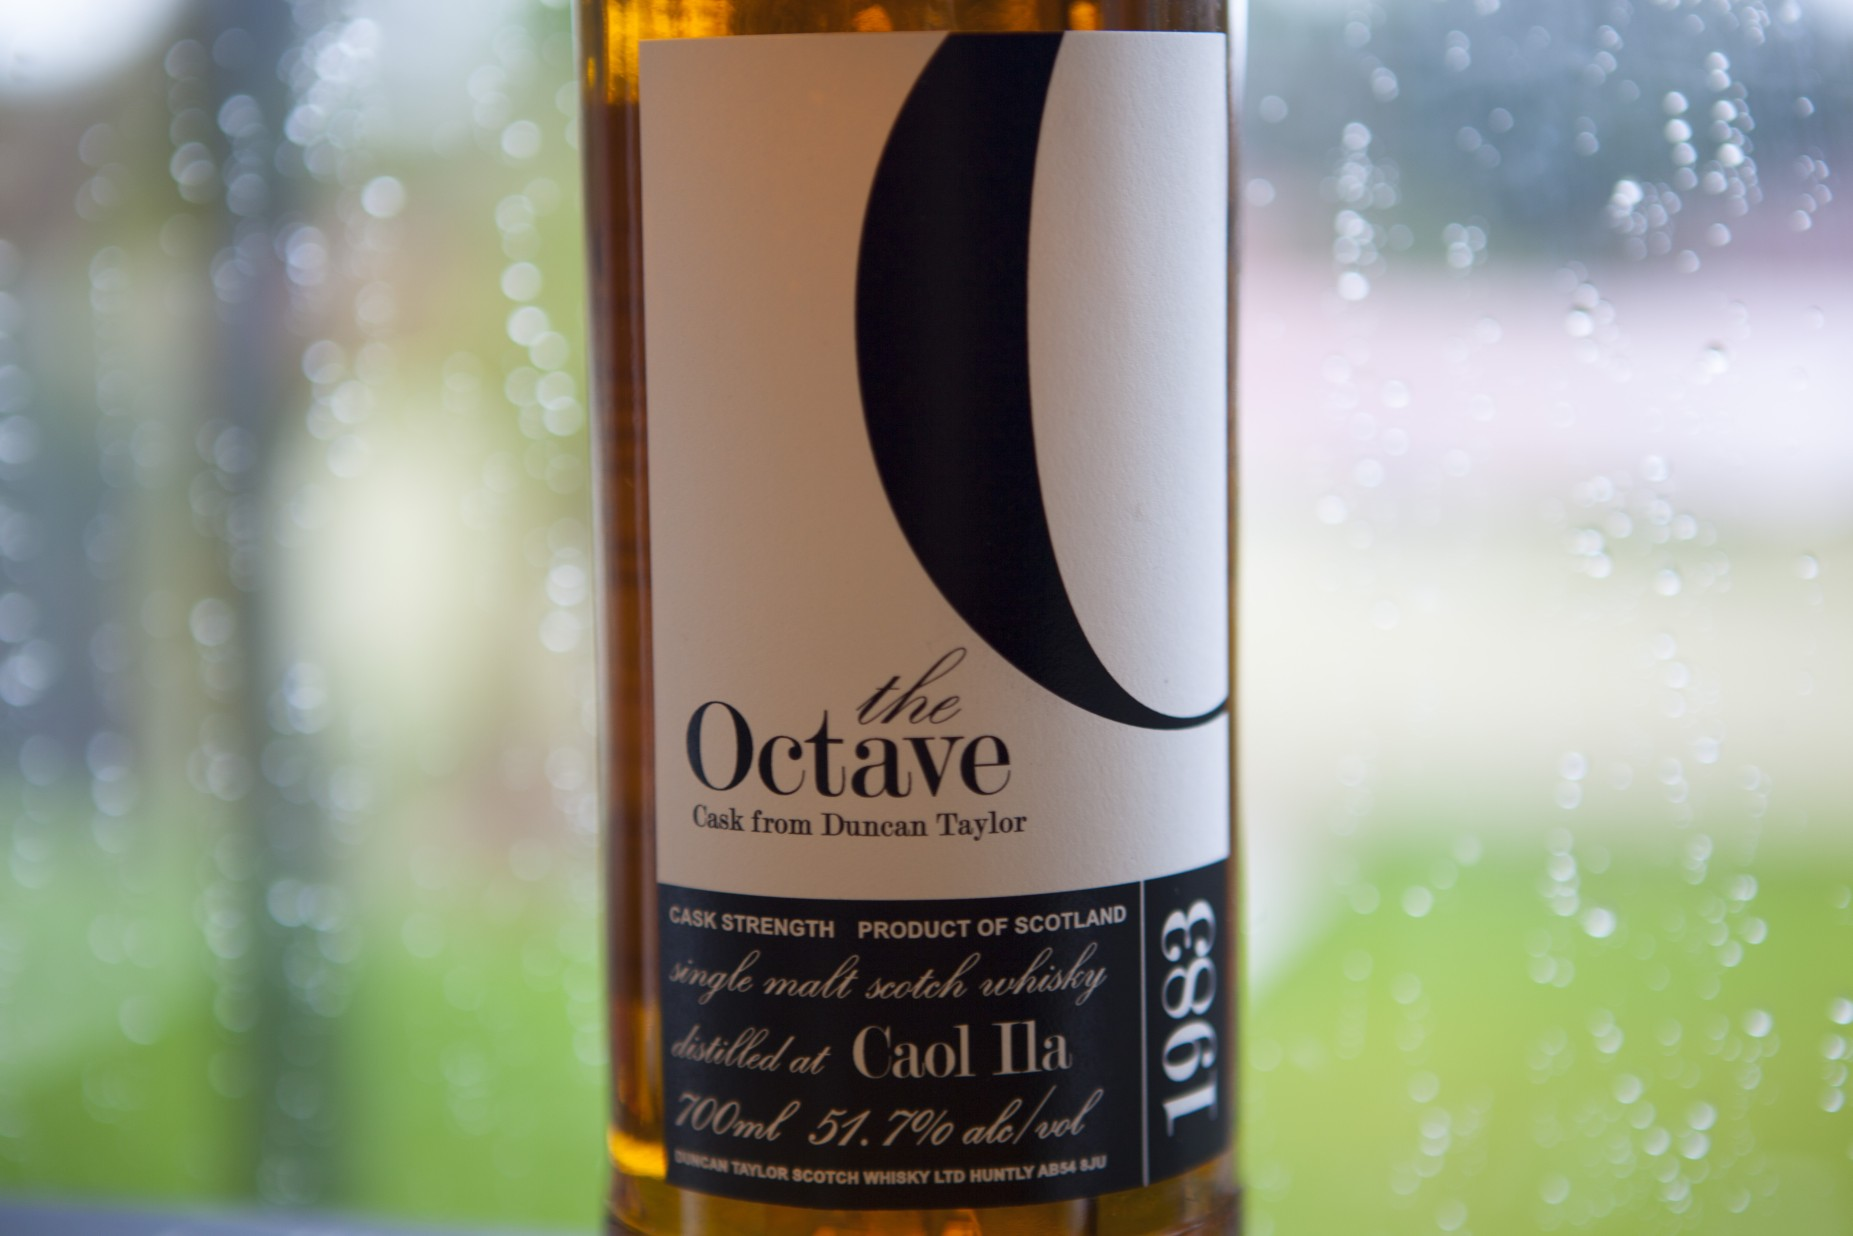 Duncan Taylor Caol Ila 28yr 1983 The Octave Whisky Review